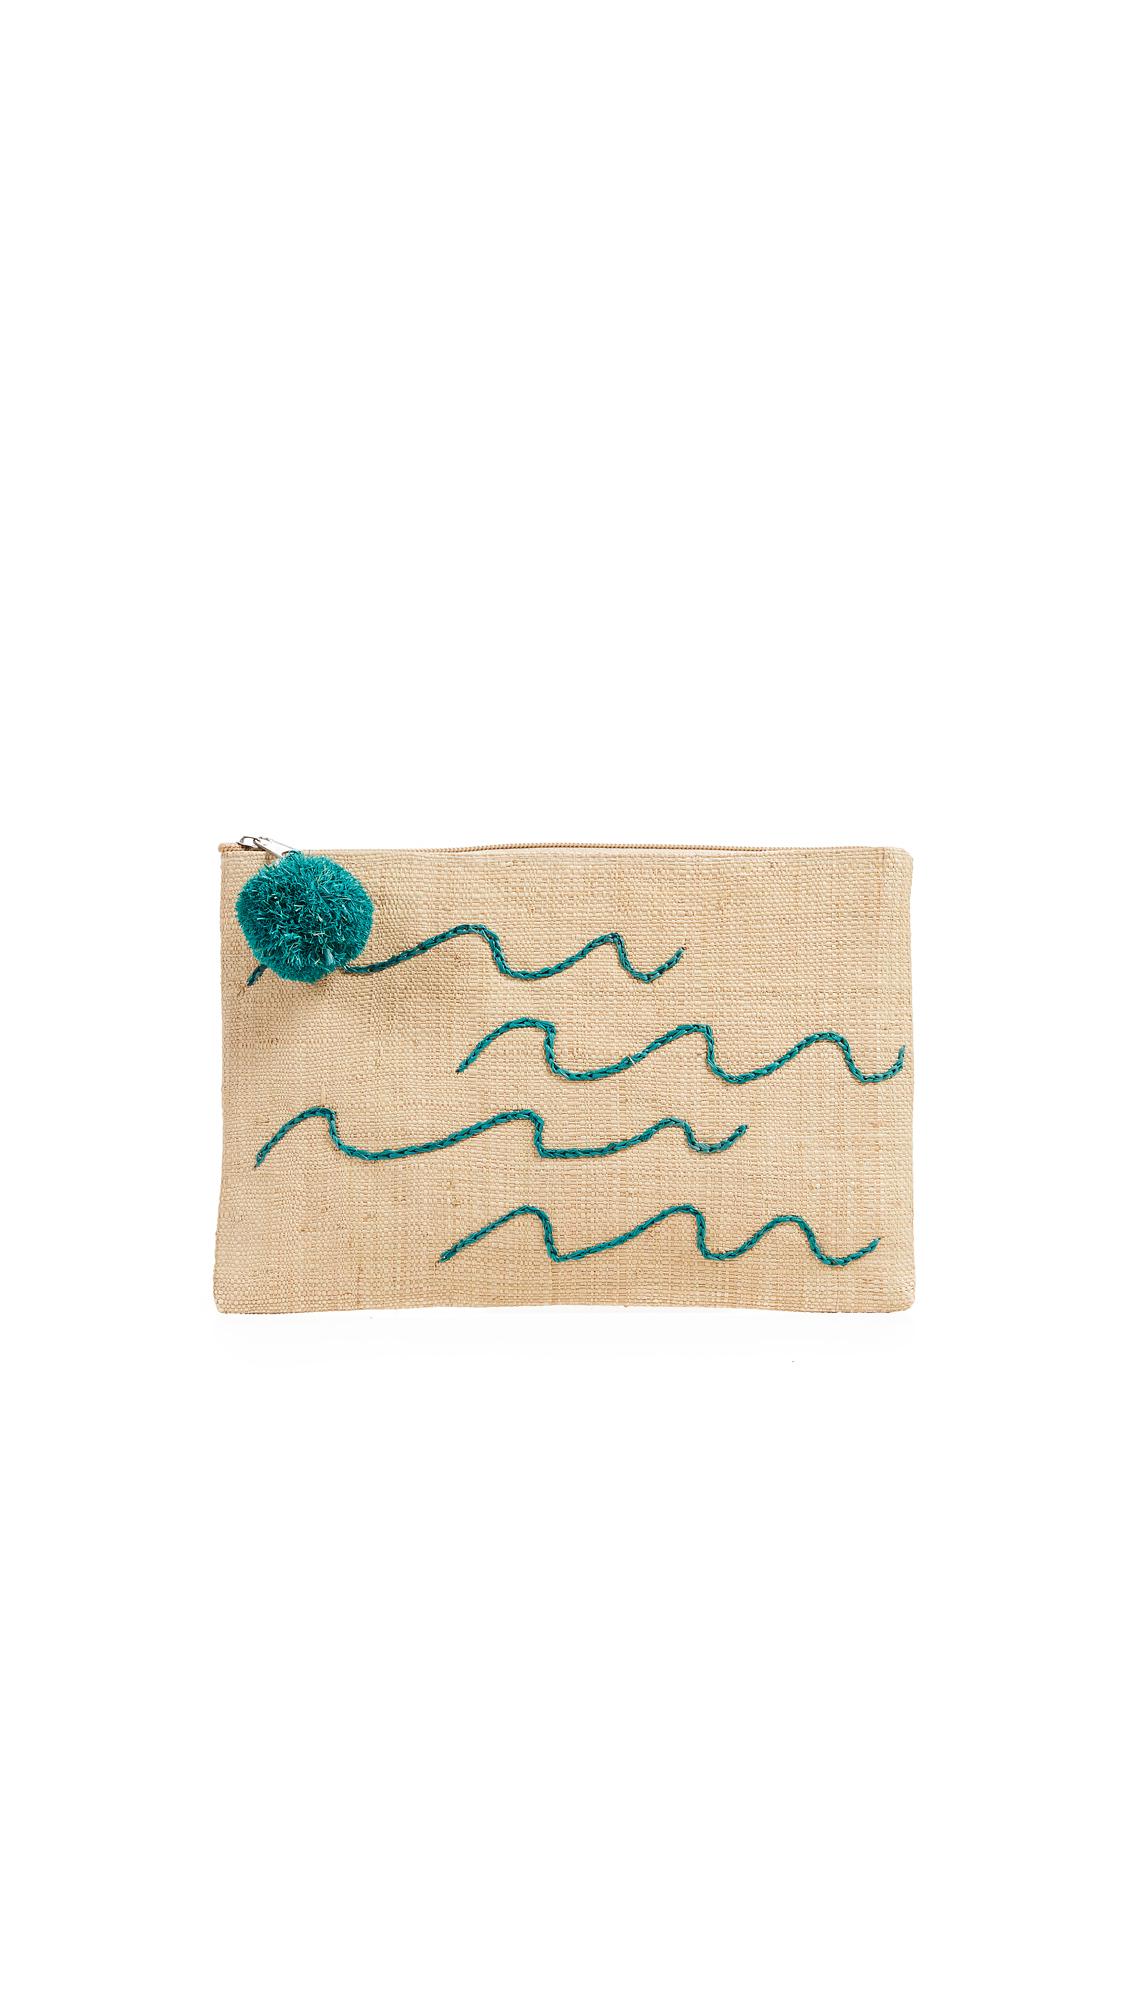 June Pouch, Waves